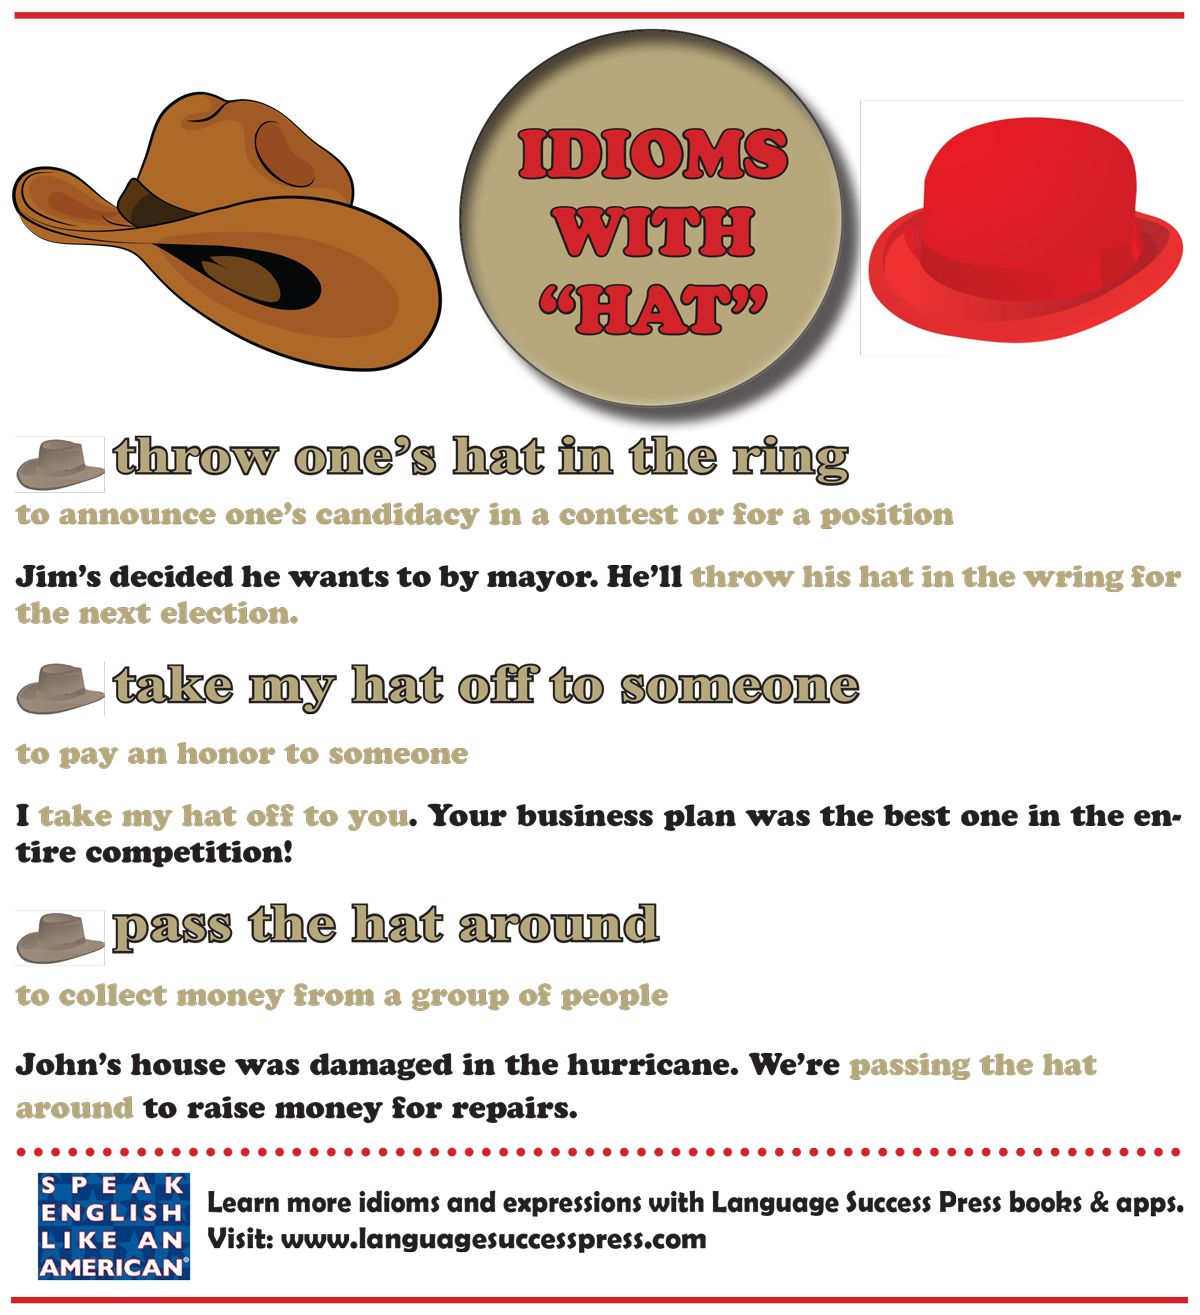 Enjoy These Idioms With Hat English Idioms Idioms And Phrases Business Idioms